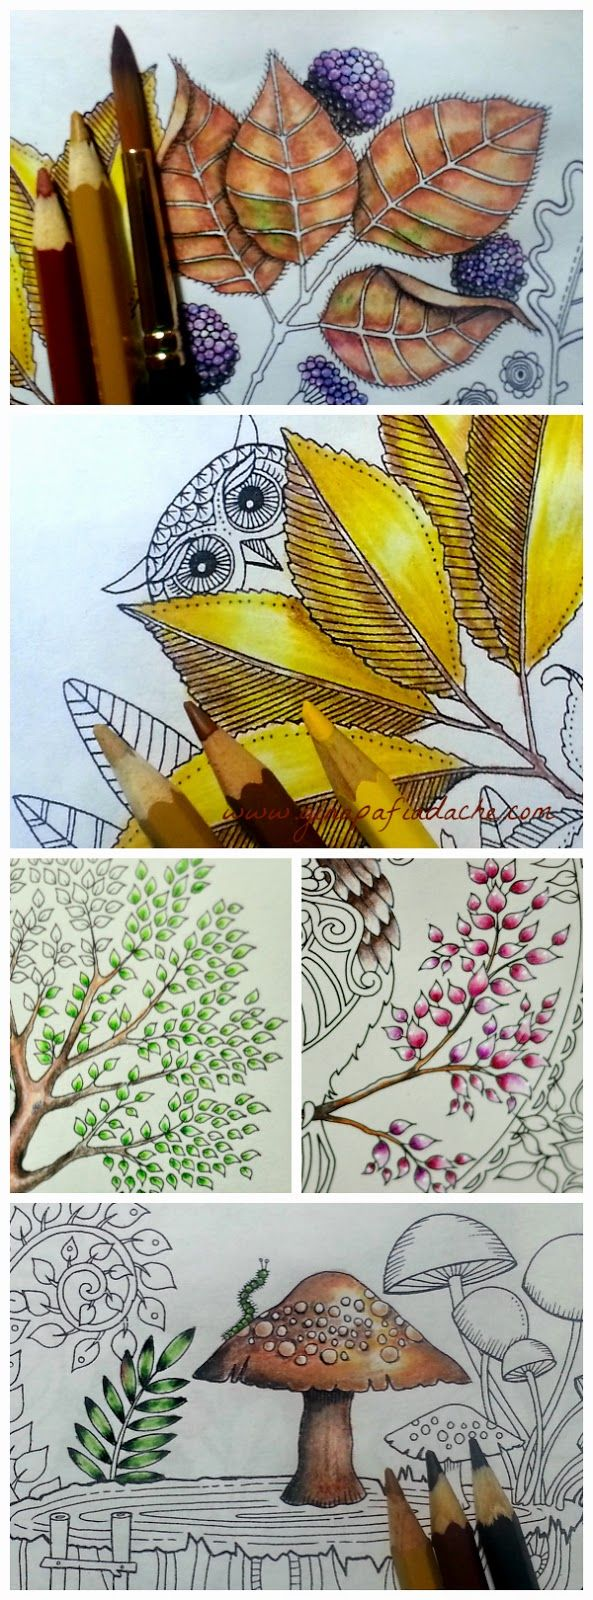 The secret garden coloring book target - Coloring Leaves And A Toadstool In Adult Coloring Book